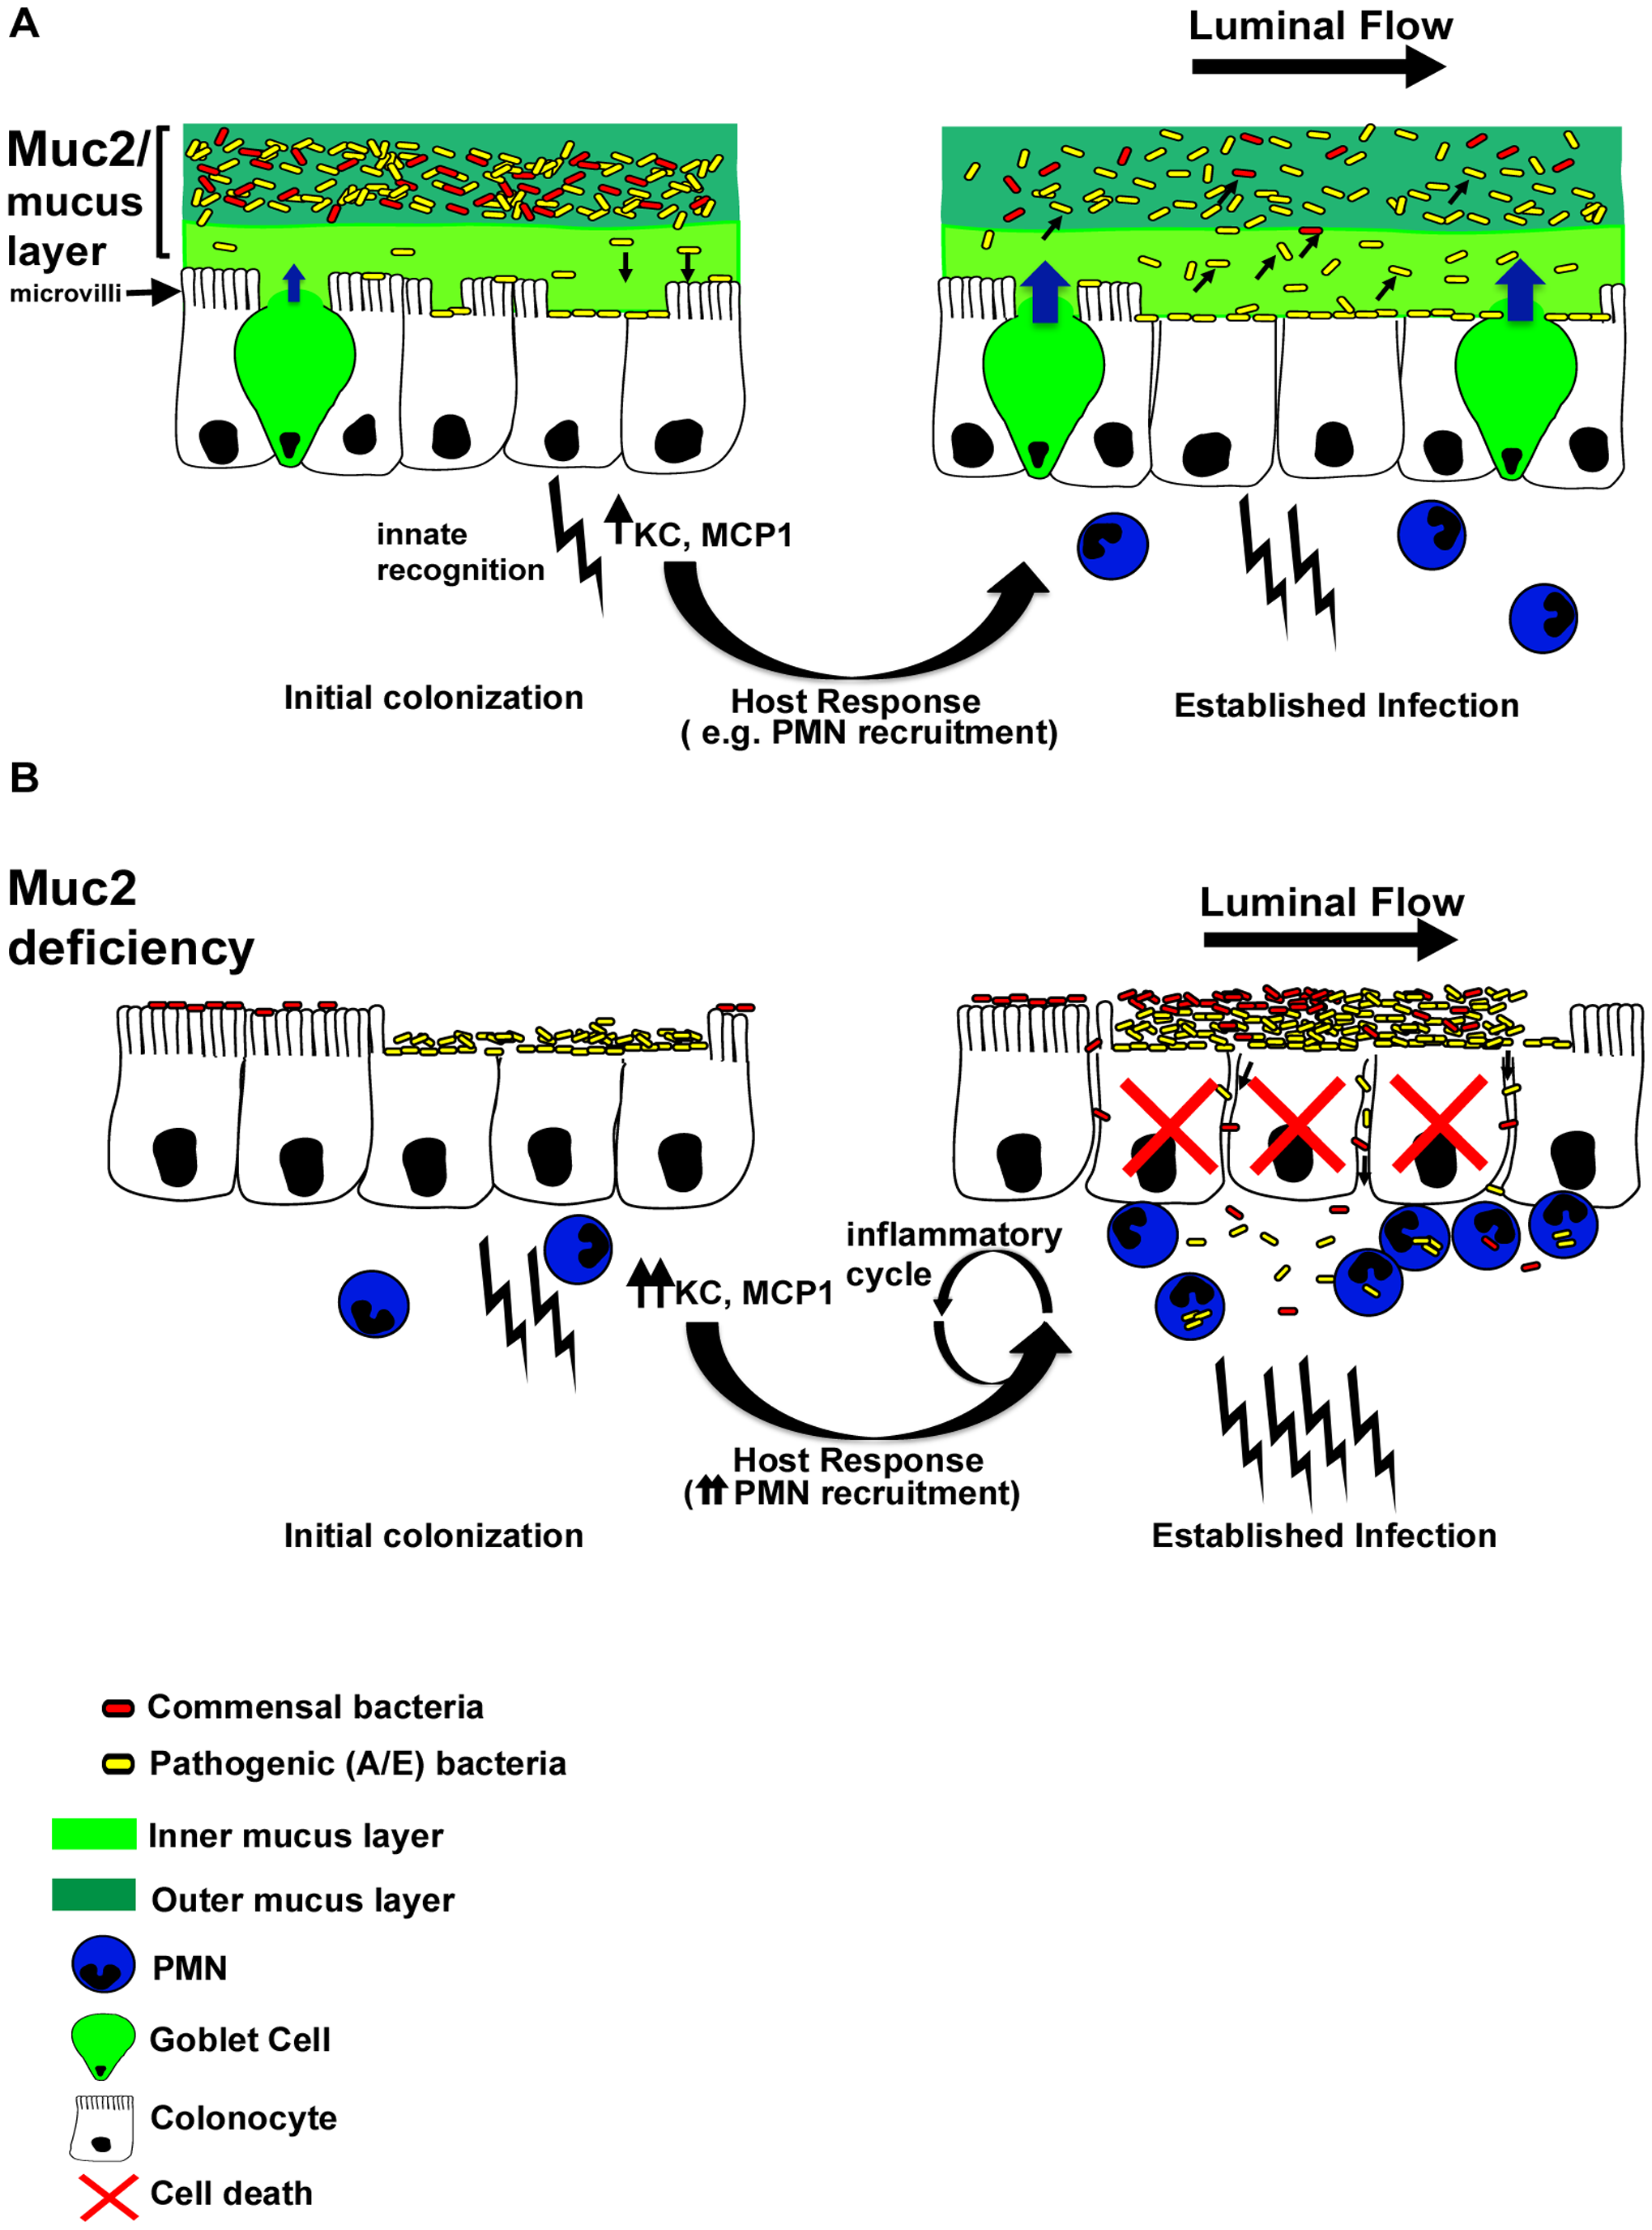 Proposed model of the role of Muc2 in the disassociation of A/E pathogen and commensal bacteria from the large intestinal mucosa.